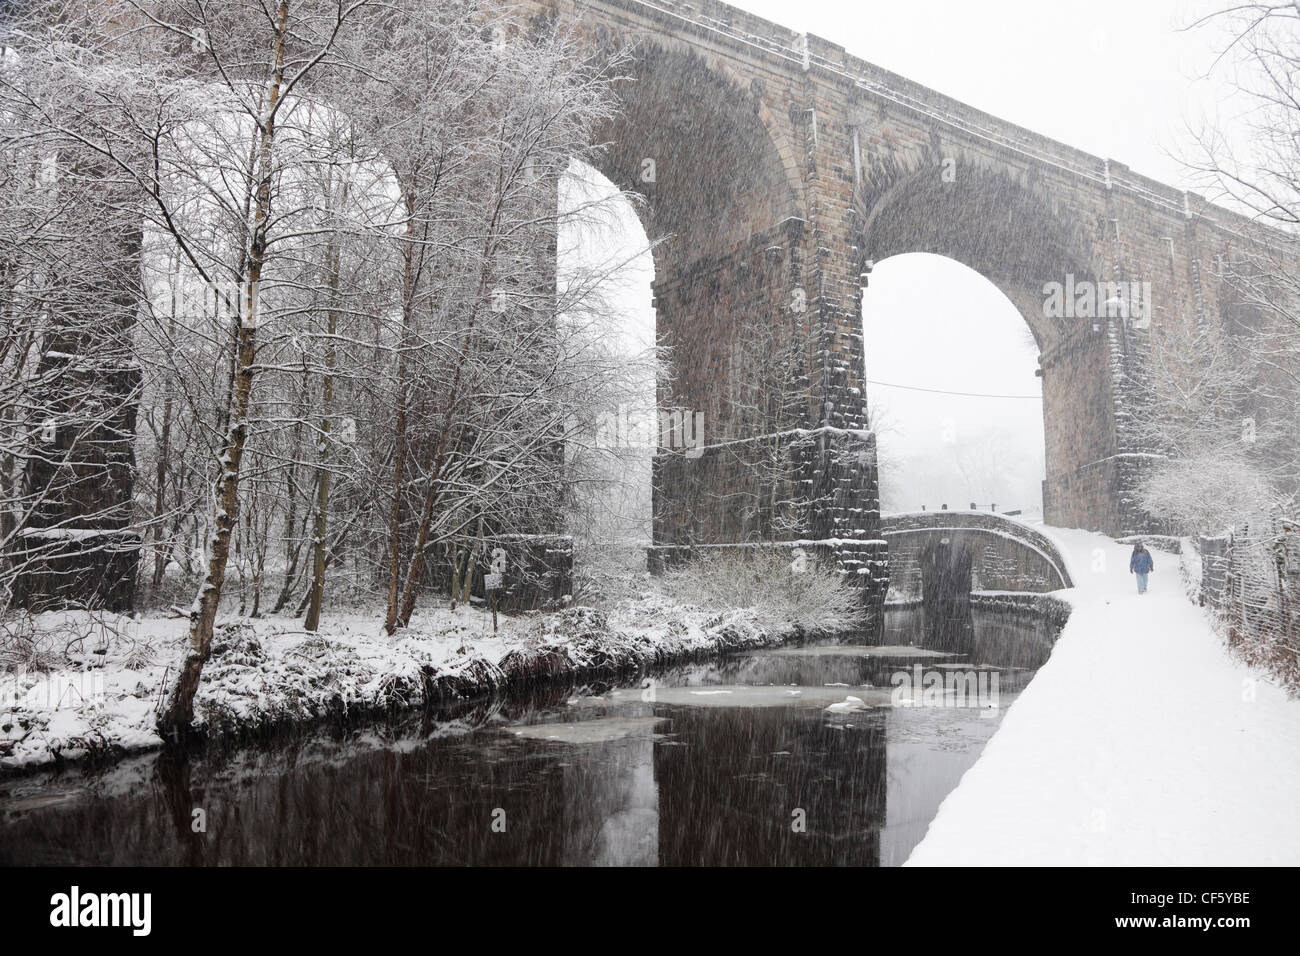 A woman walking along the towpath of the Huddersfield Narrow Canal beneath Saddleworth Viaduct in heavy snow. - Stock Image